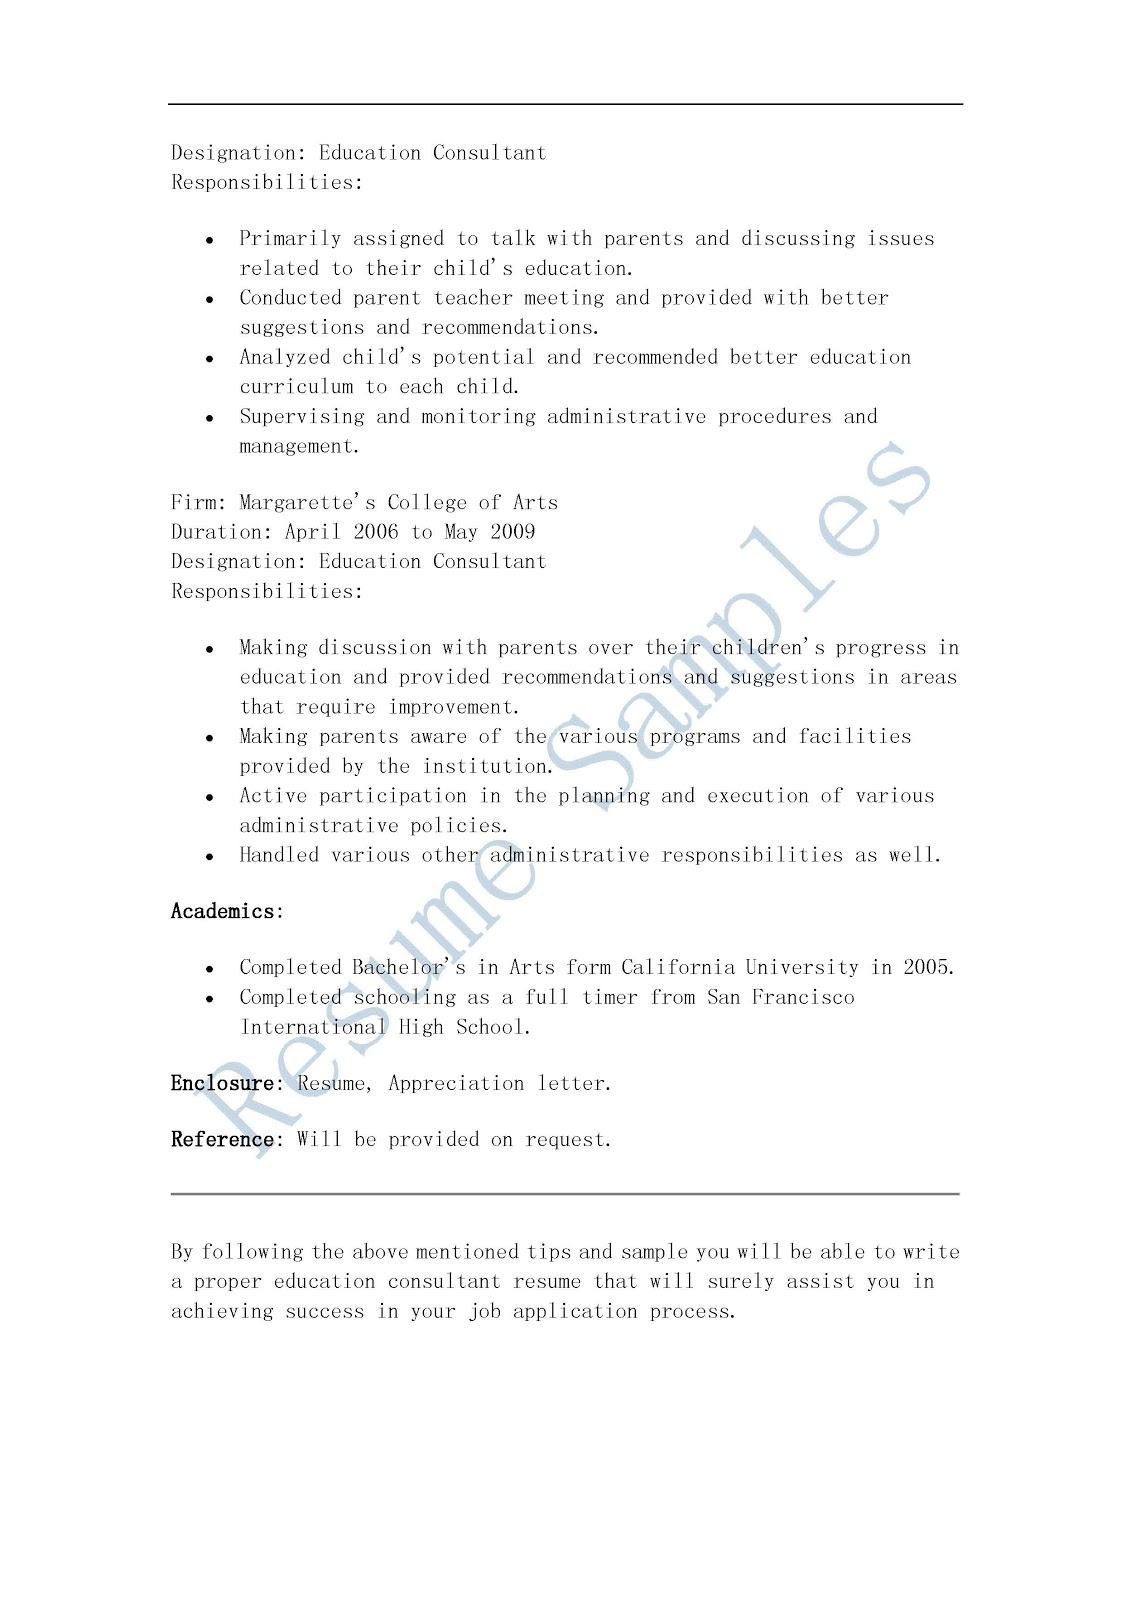 resume template education